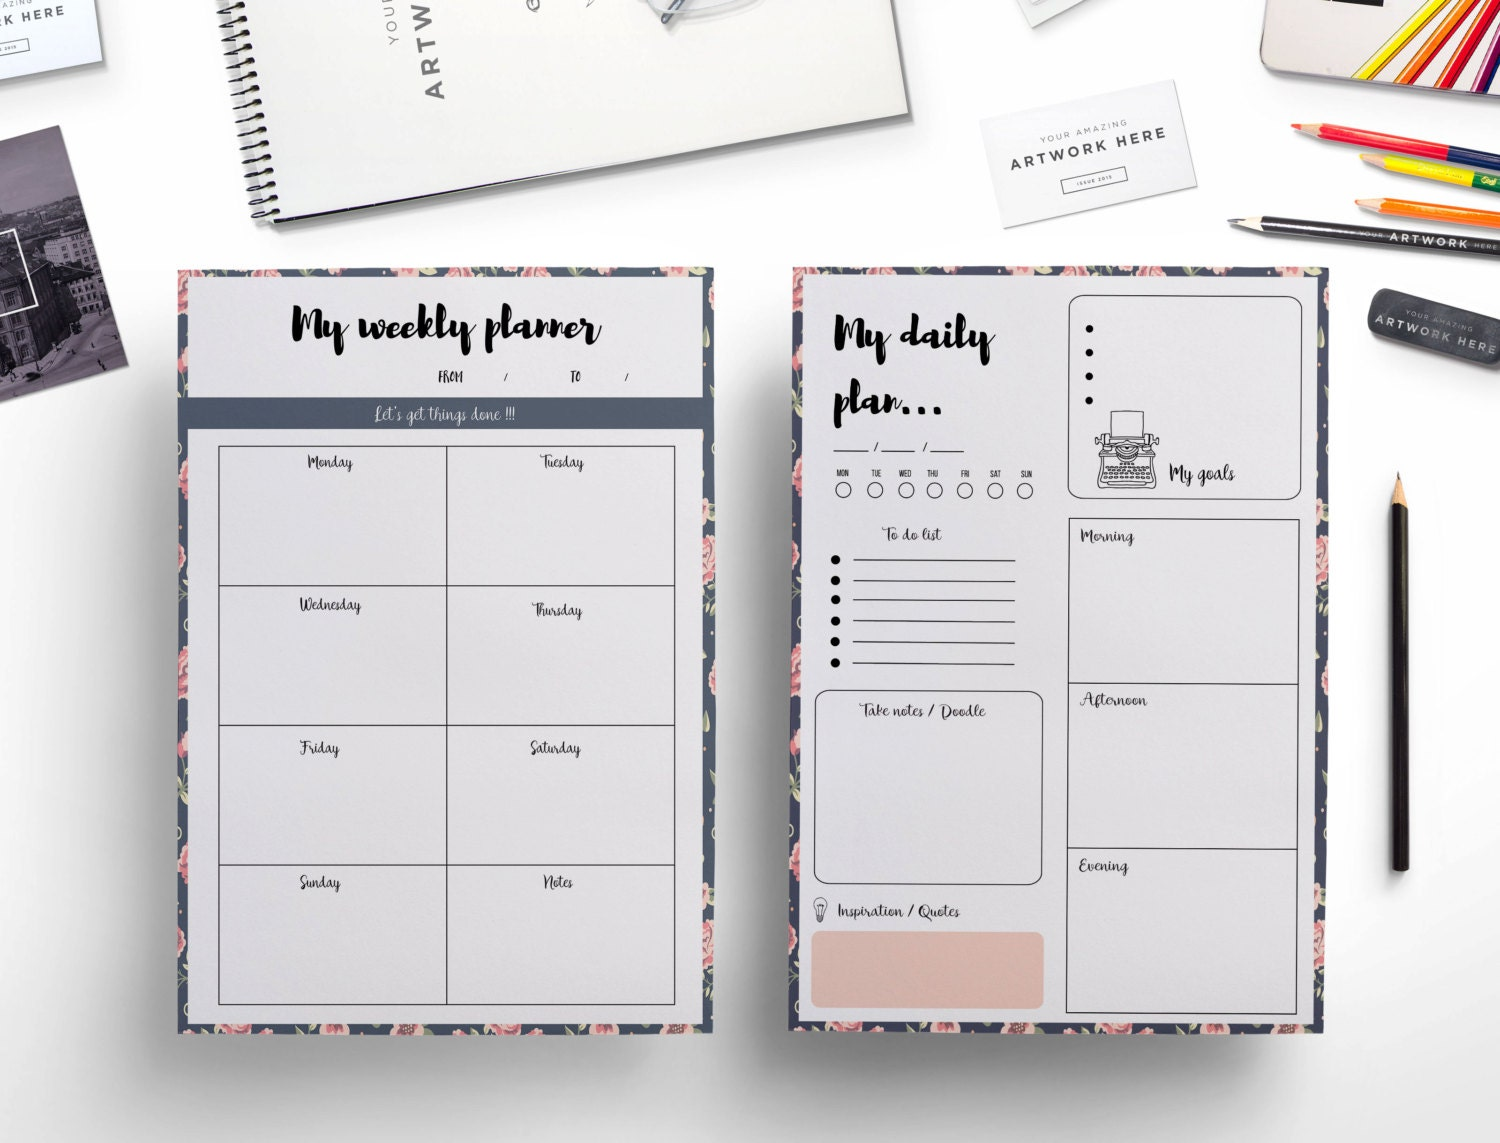 Floral weekly planner daily planner elegant design – Daily Planning Template